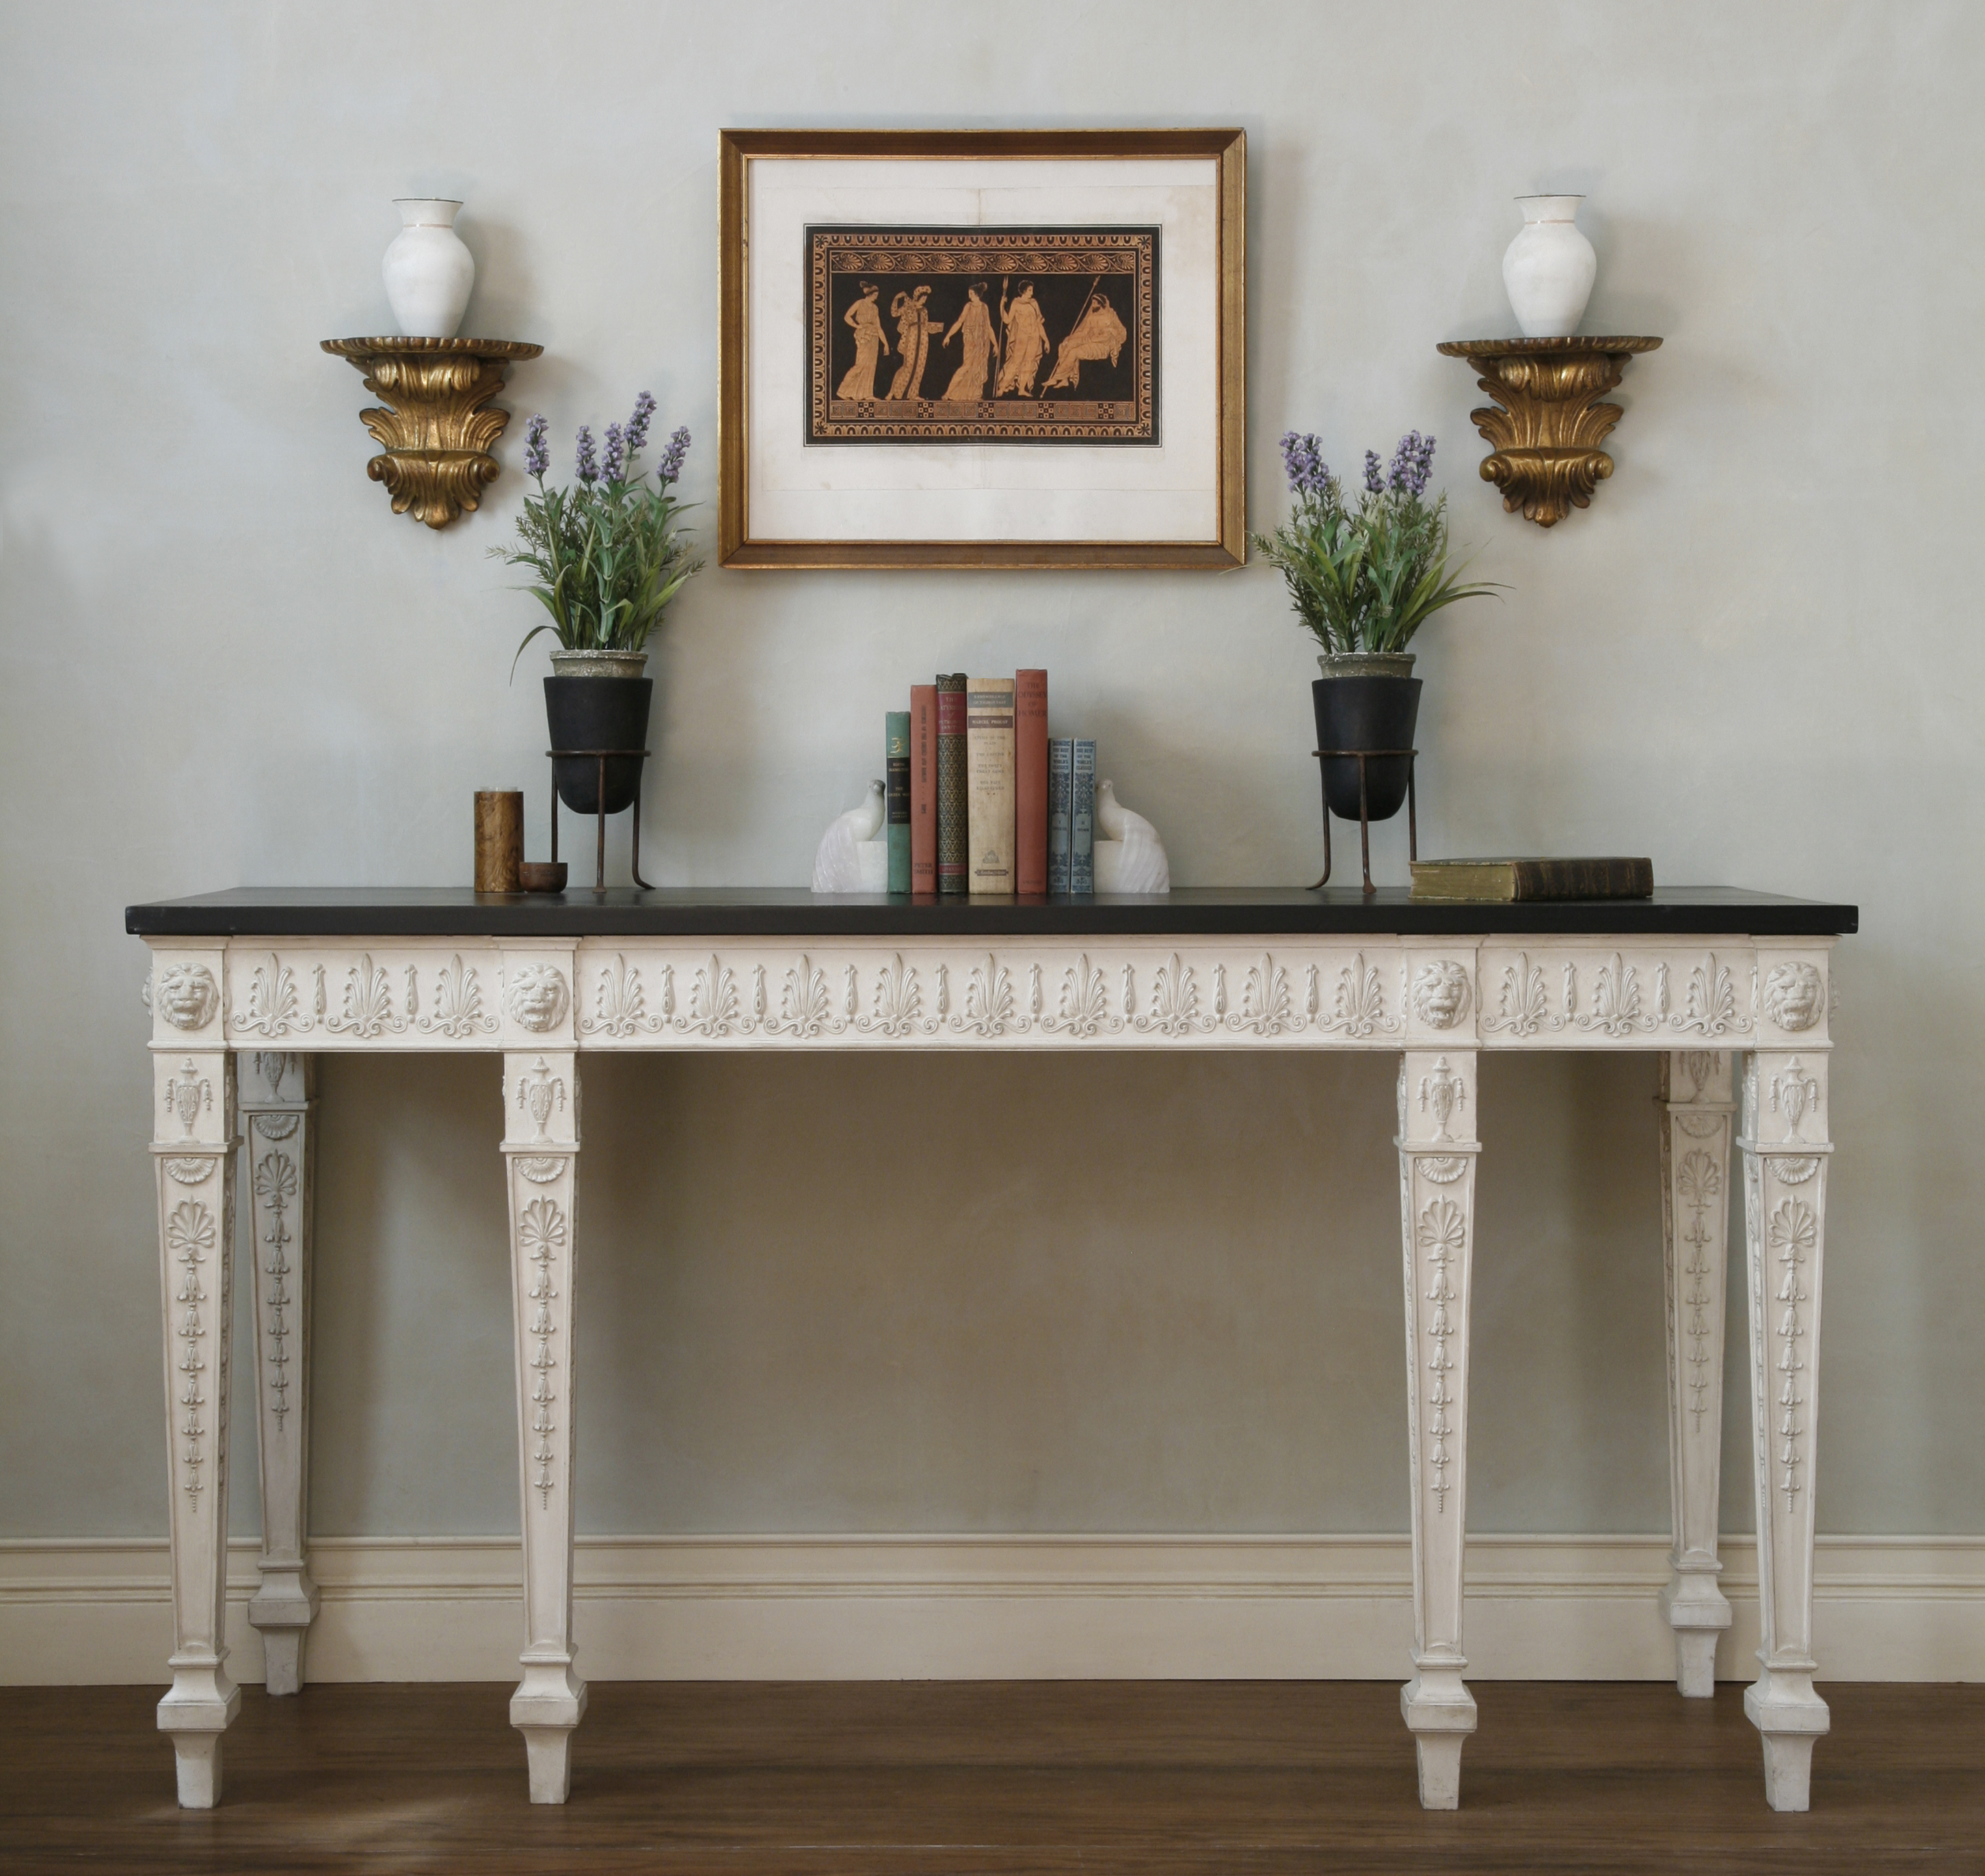 George Iii Console Table – Kevin Cross Studio pertaining to Archive Grey Console Tables (Image 22 of 30)